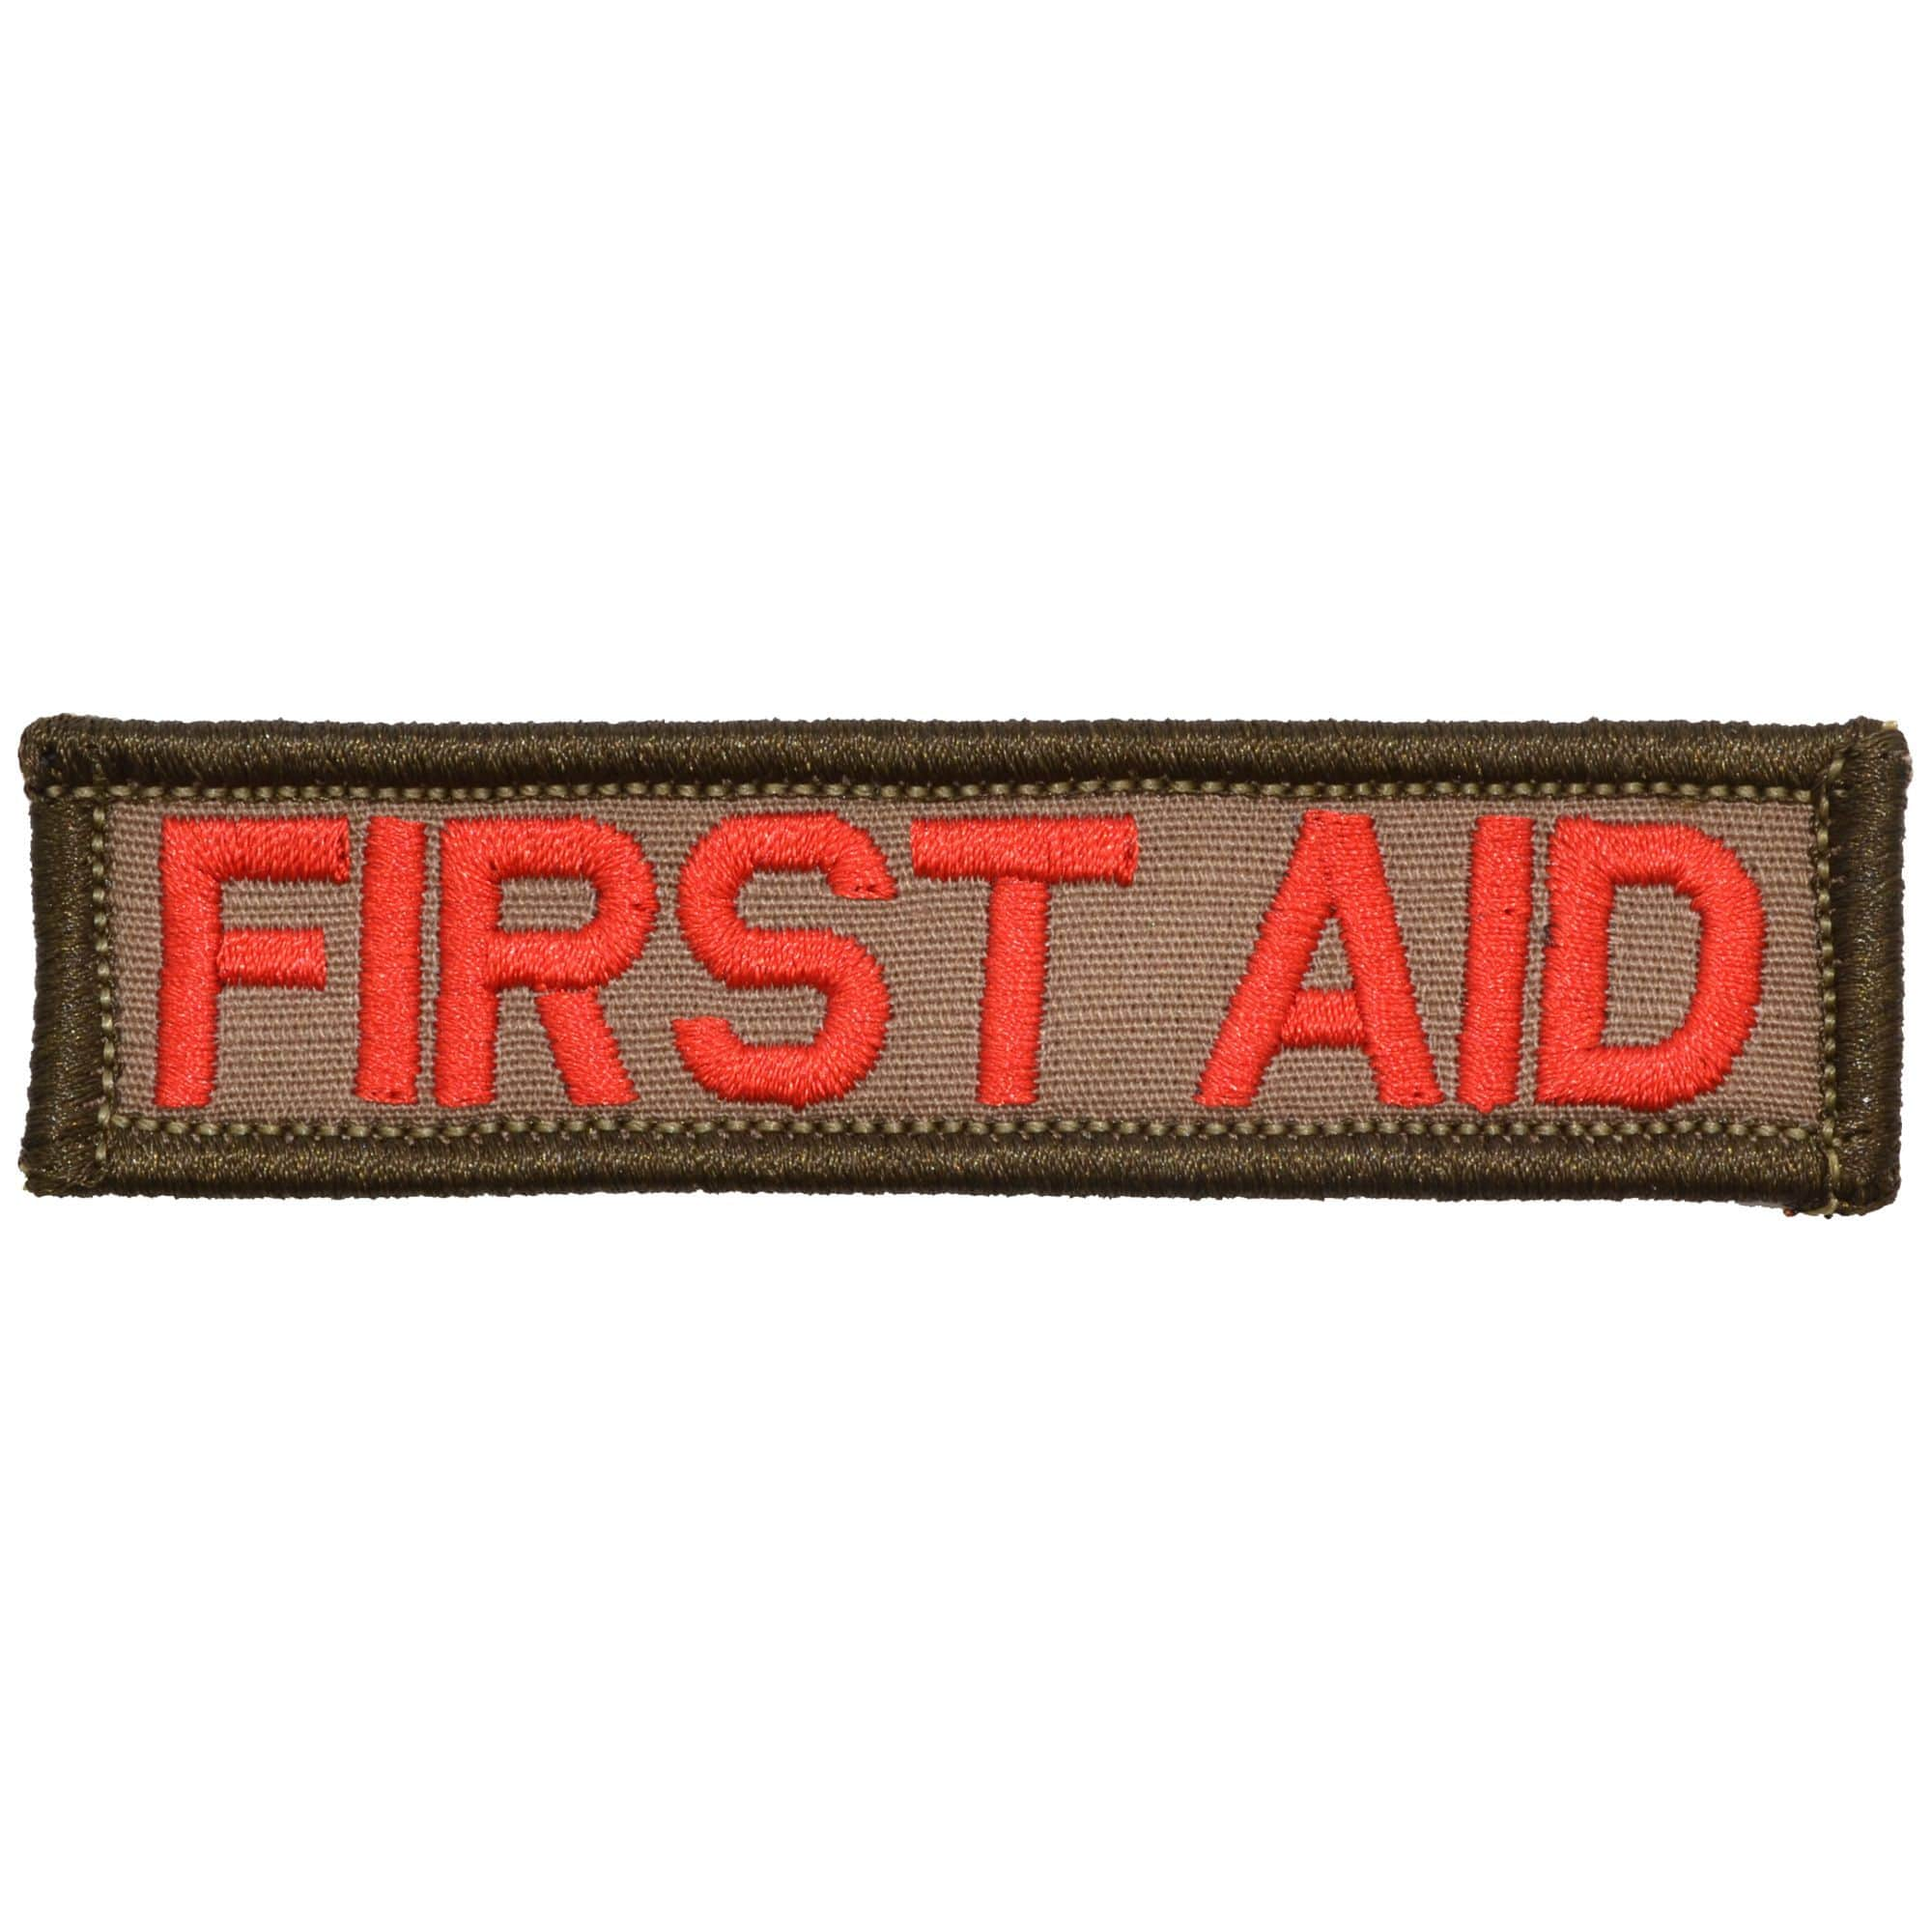 Tactical Gear Junkie Patches Coyote Brown First Aid - 1x3.75 Patch